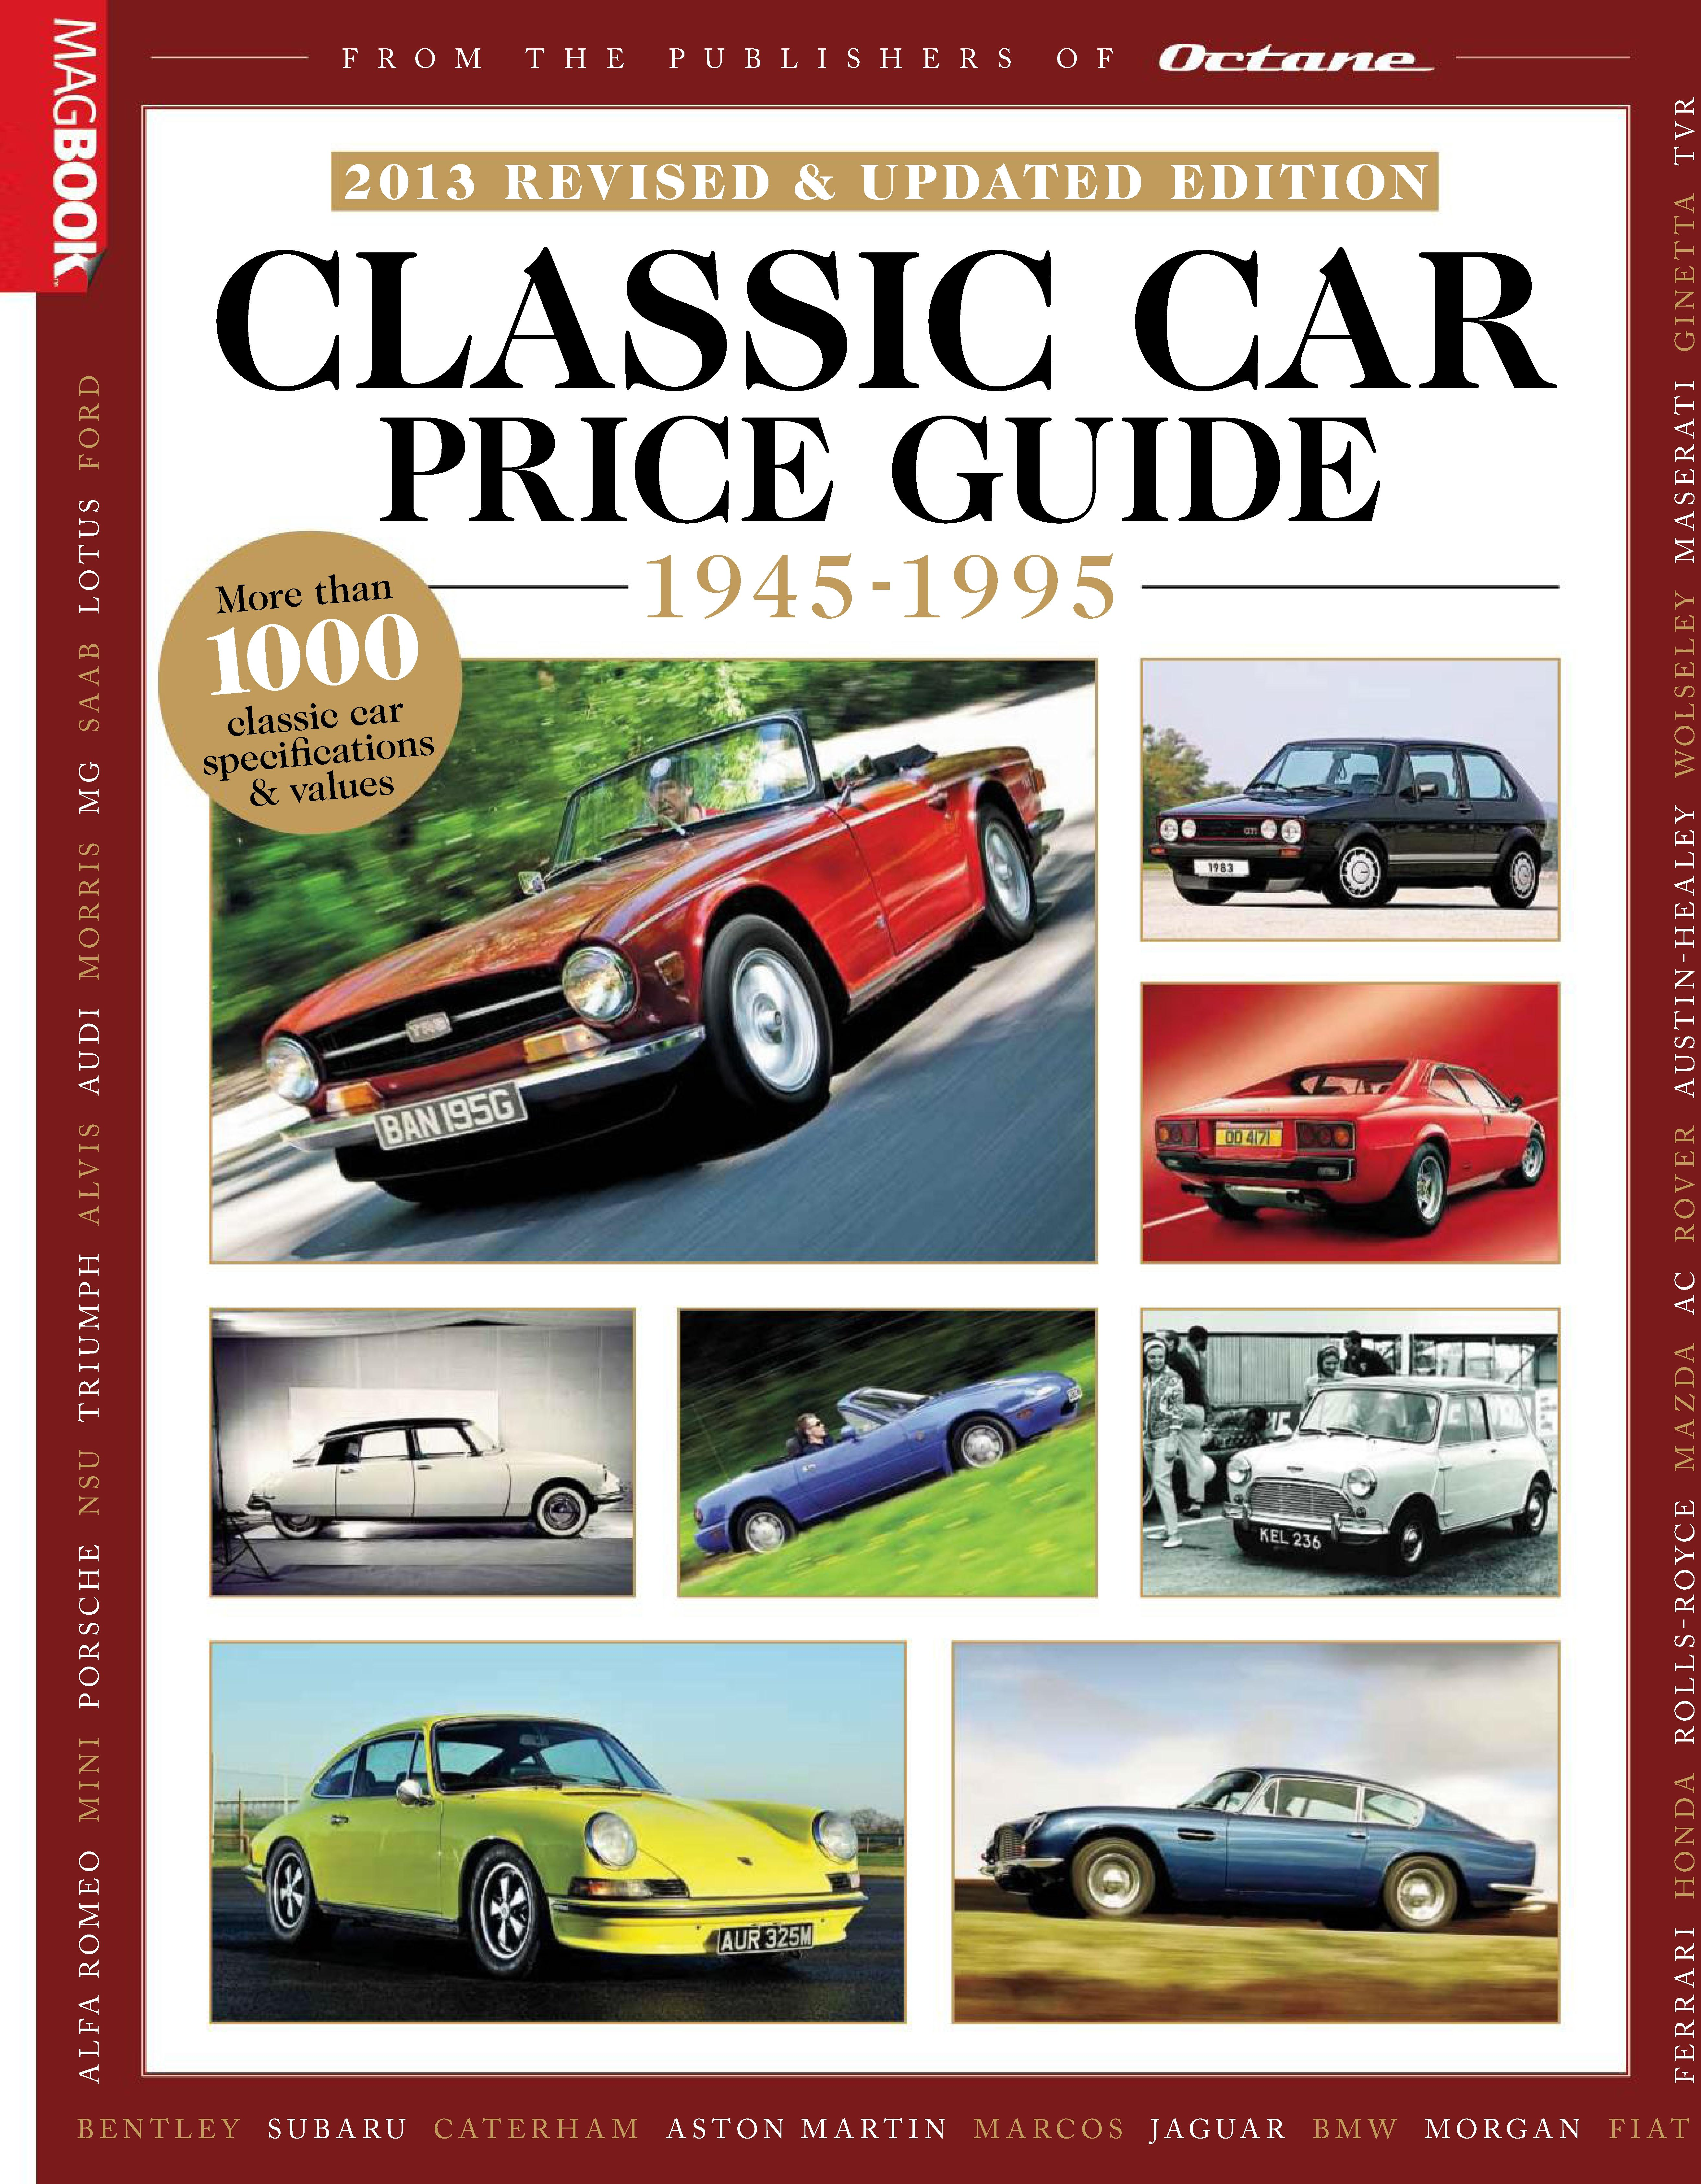 classic car price guide subscription rh zinio com classic car price guide free classic car price guide free online